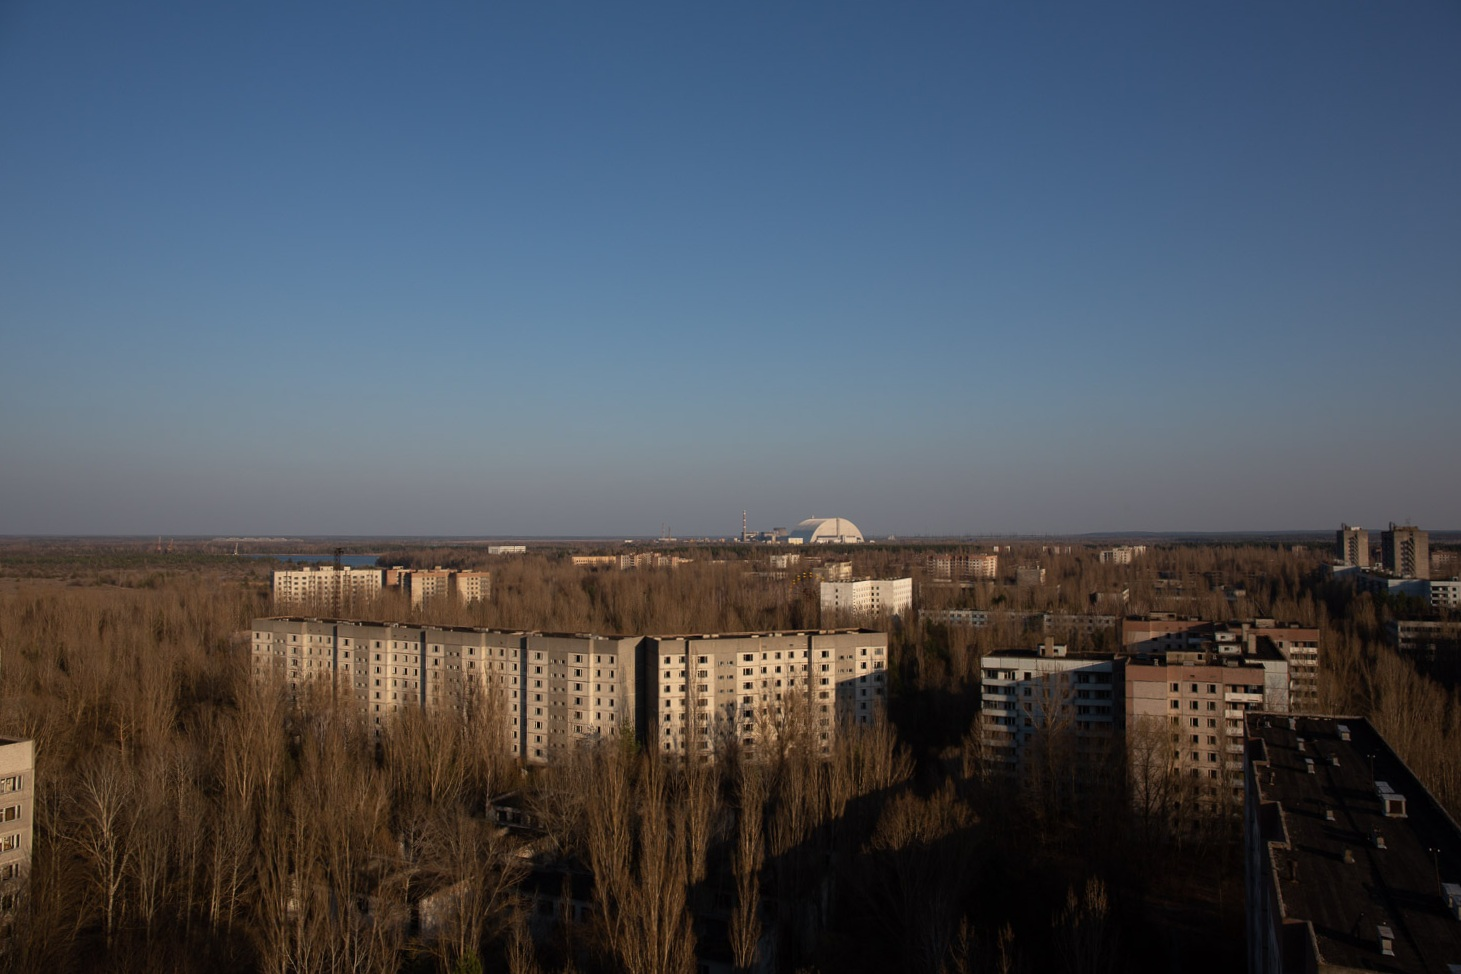 Chernobyl power plant seen from Pripyat